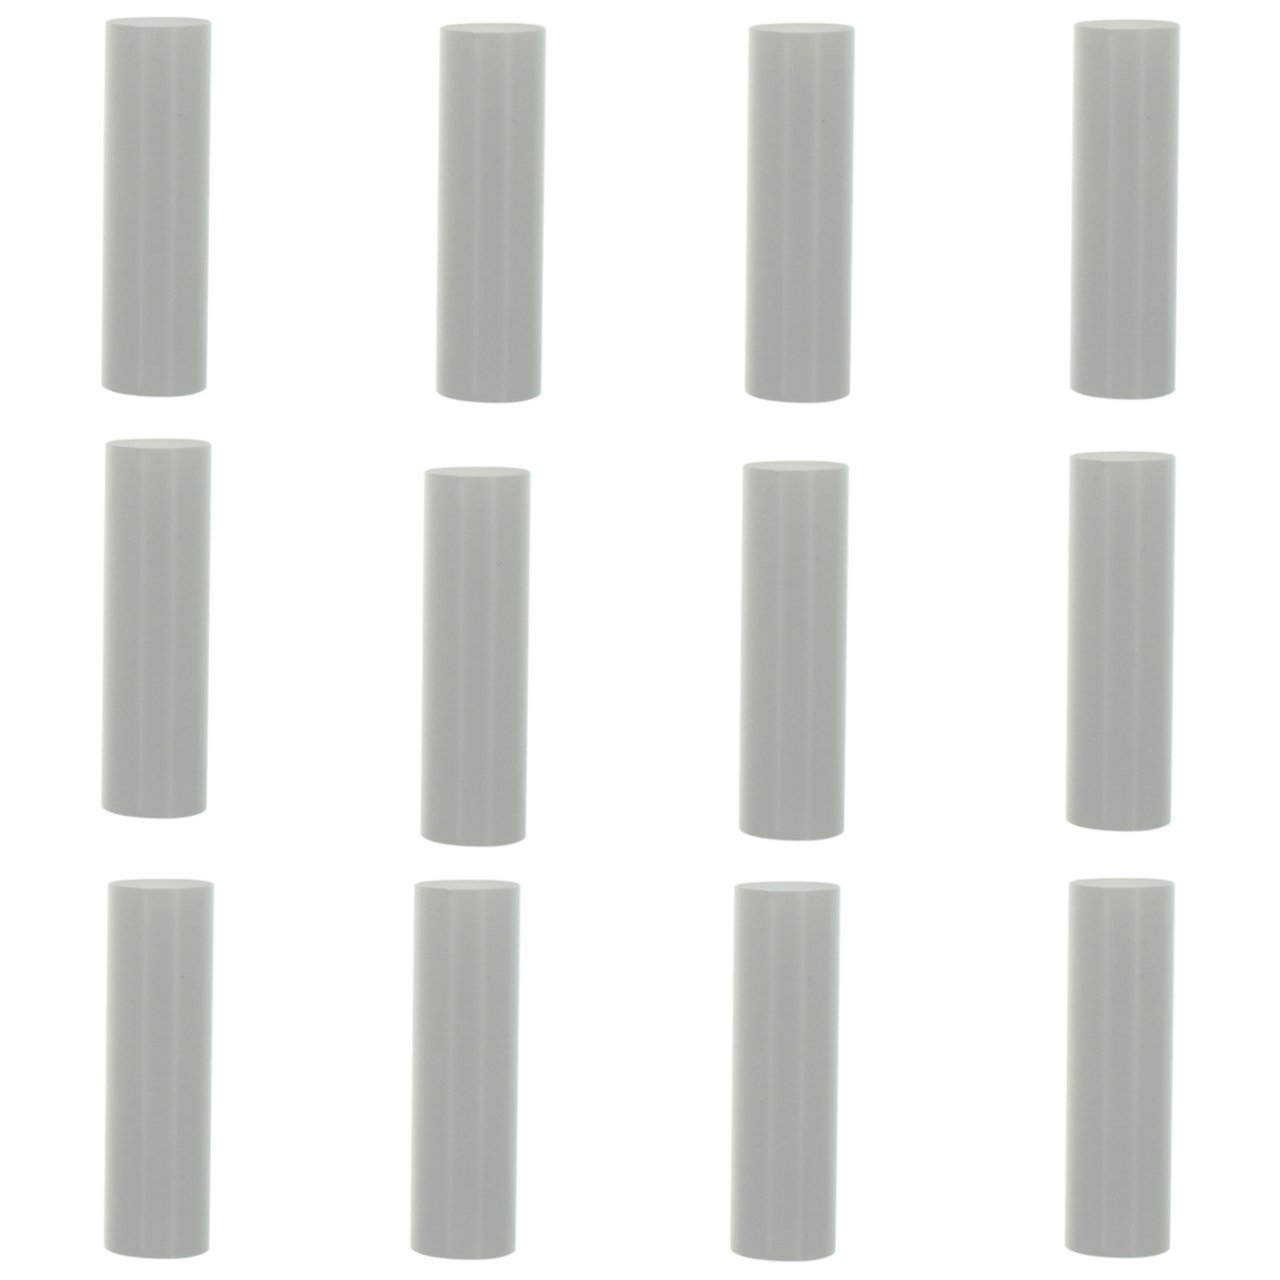 Upgradelights 3.5 Inch Chandelier Candle Socket Covers/Sleeves (Set of 12)